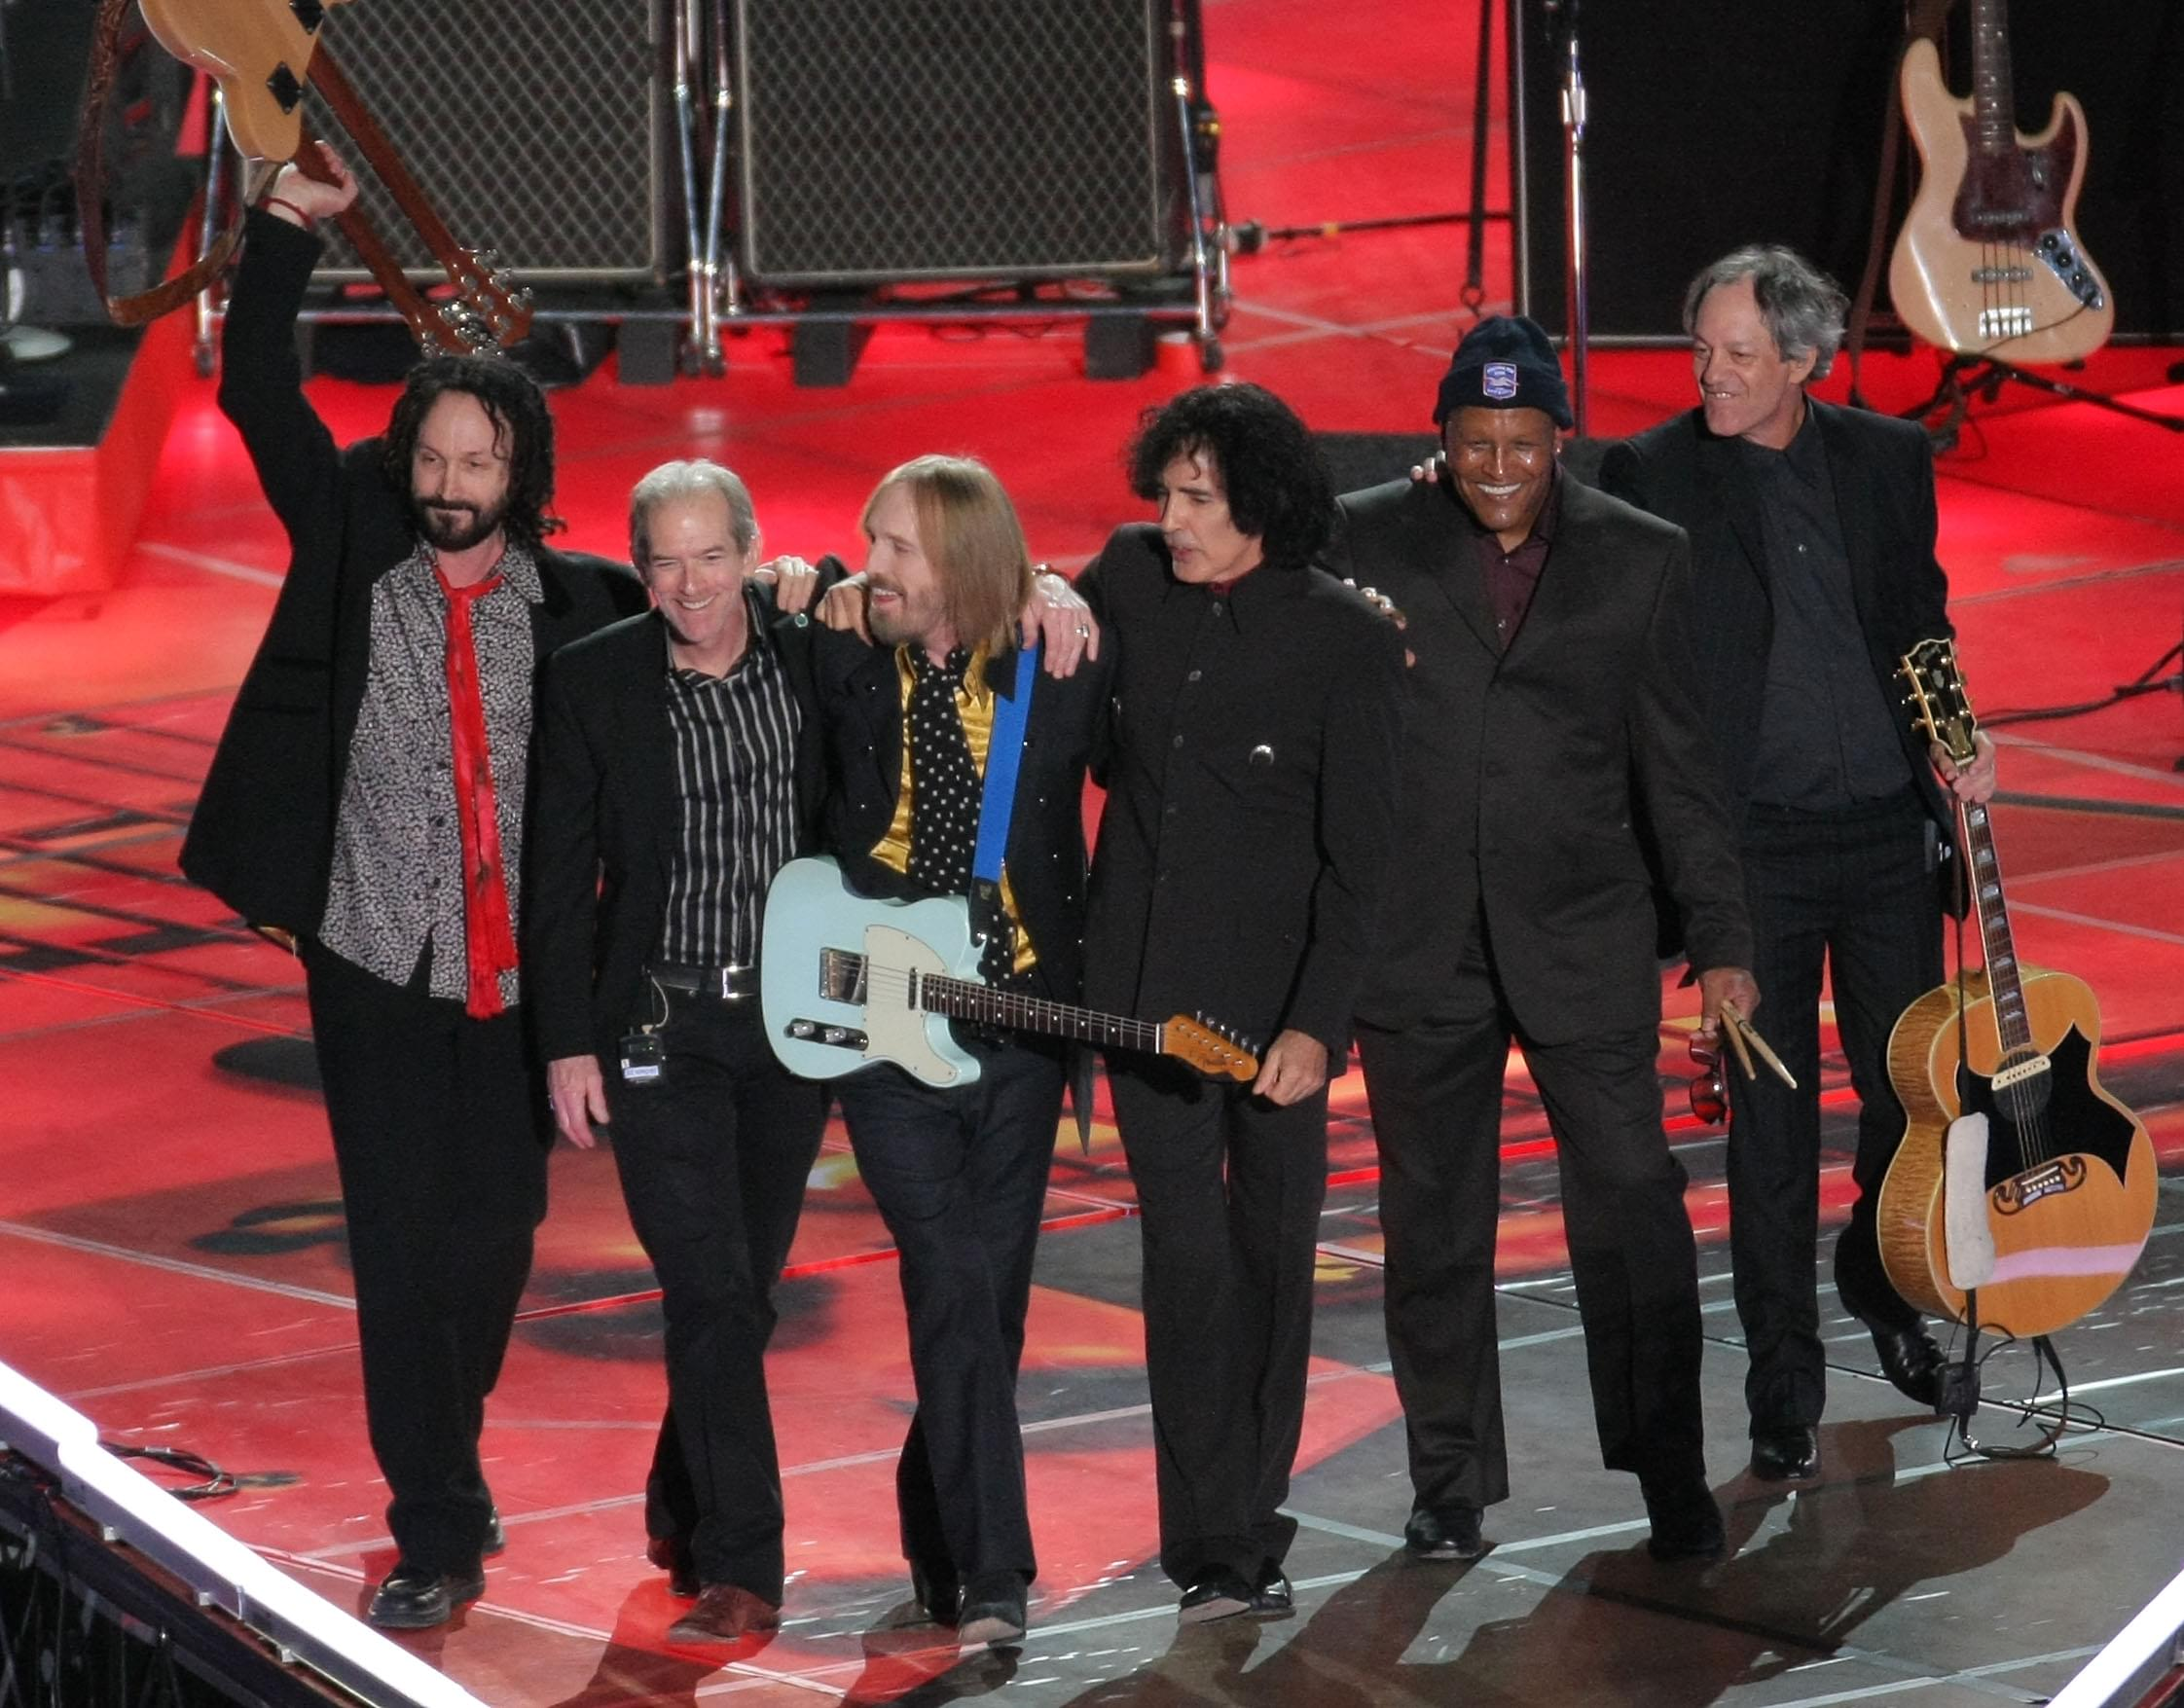 Tom Petty's Band Members Explain Why The Final Tour Should Have Been Postponed